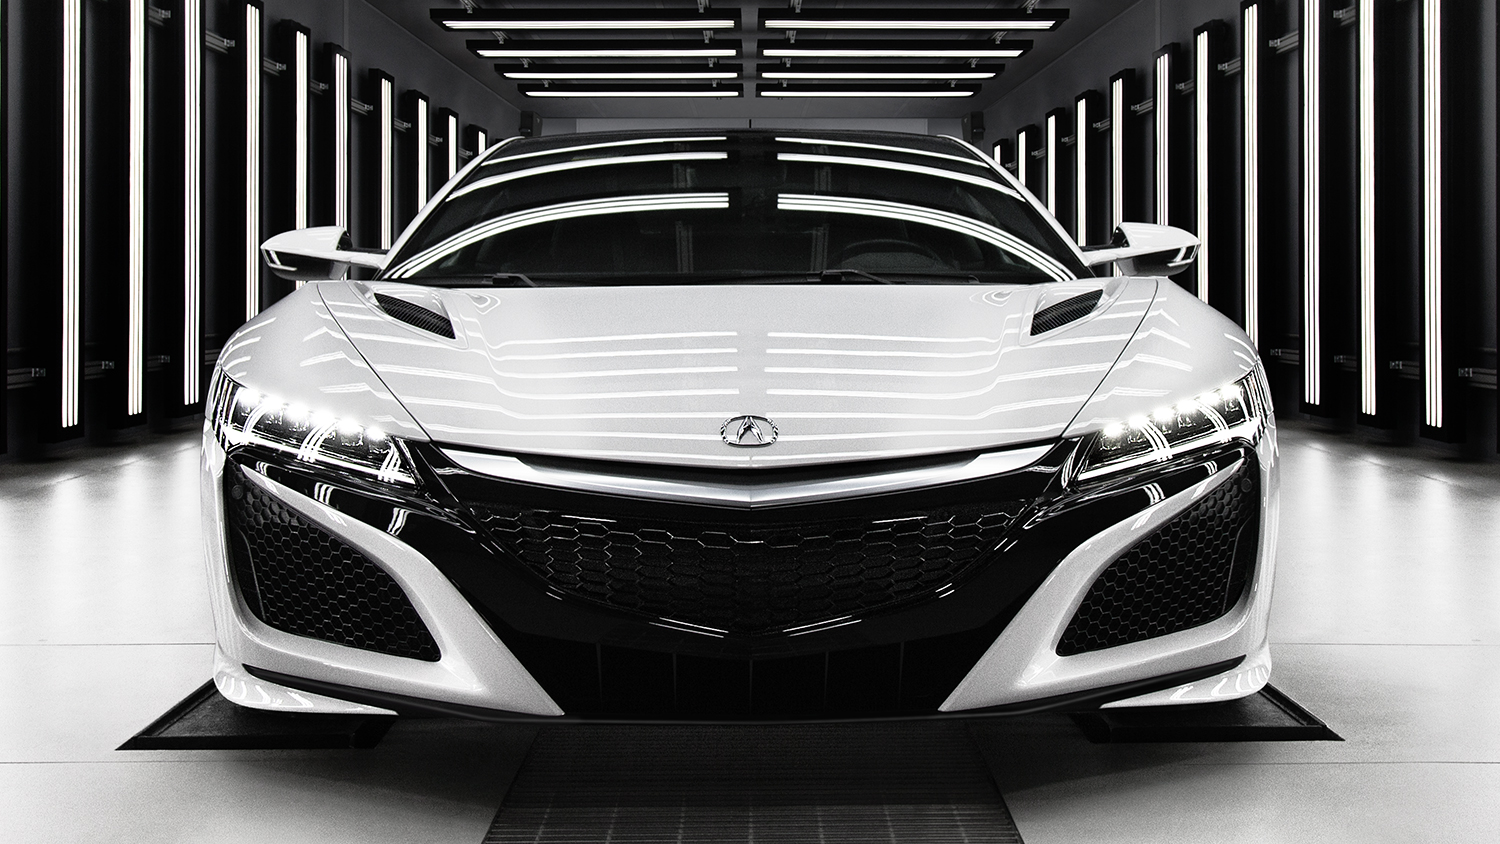 2017 Acura Nsx Houston Acura Dealers Luxury Sports Cars In Tx